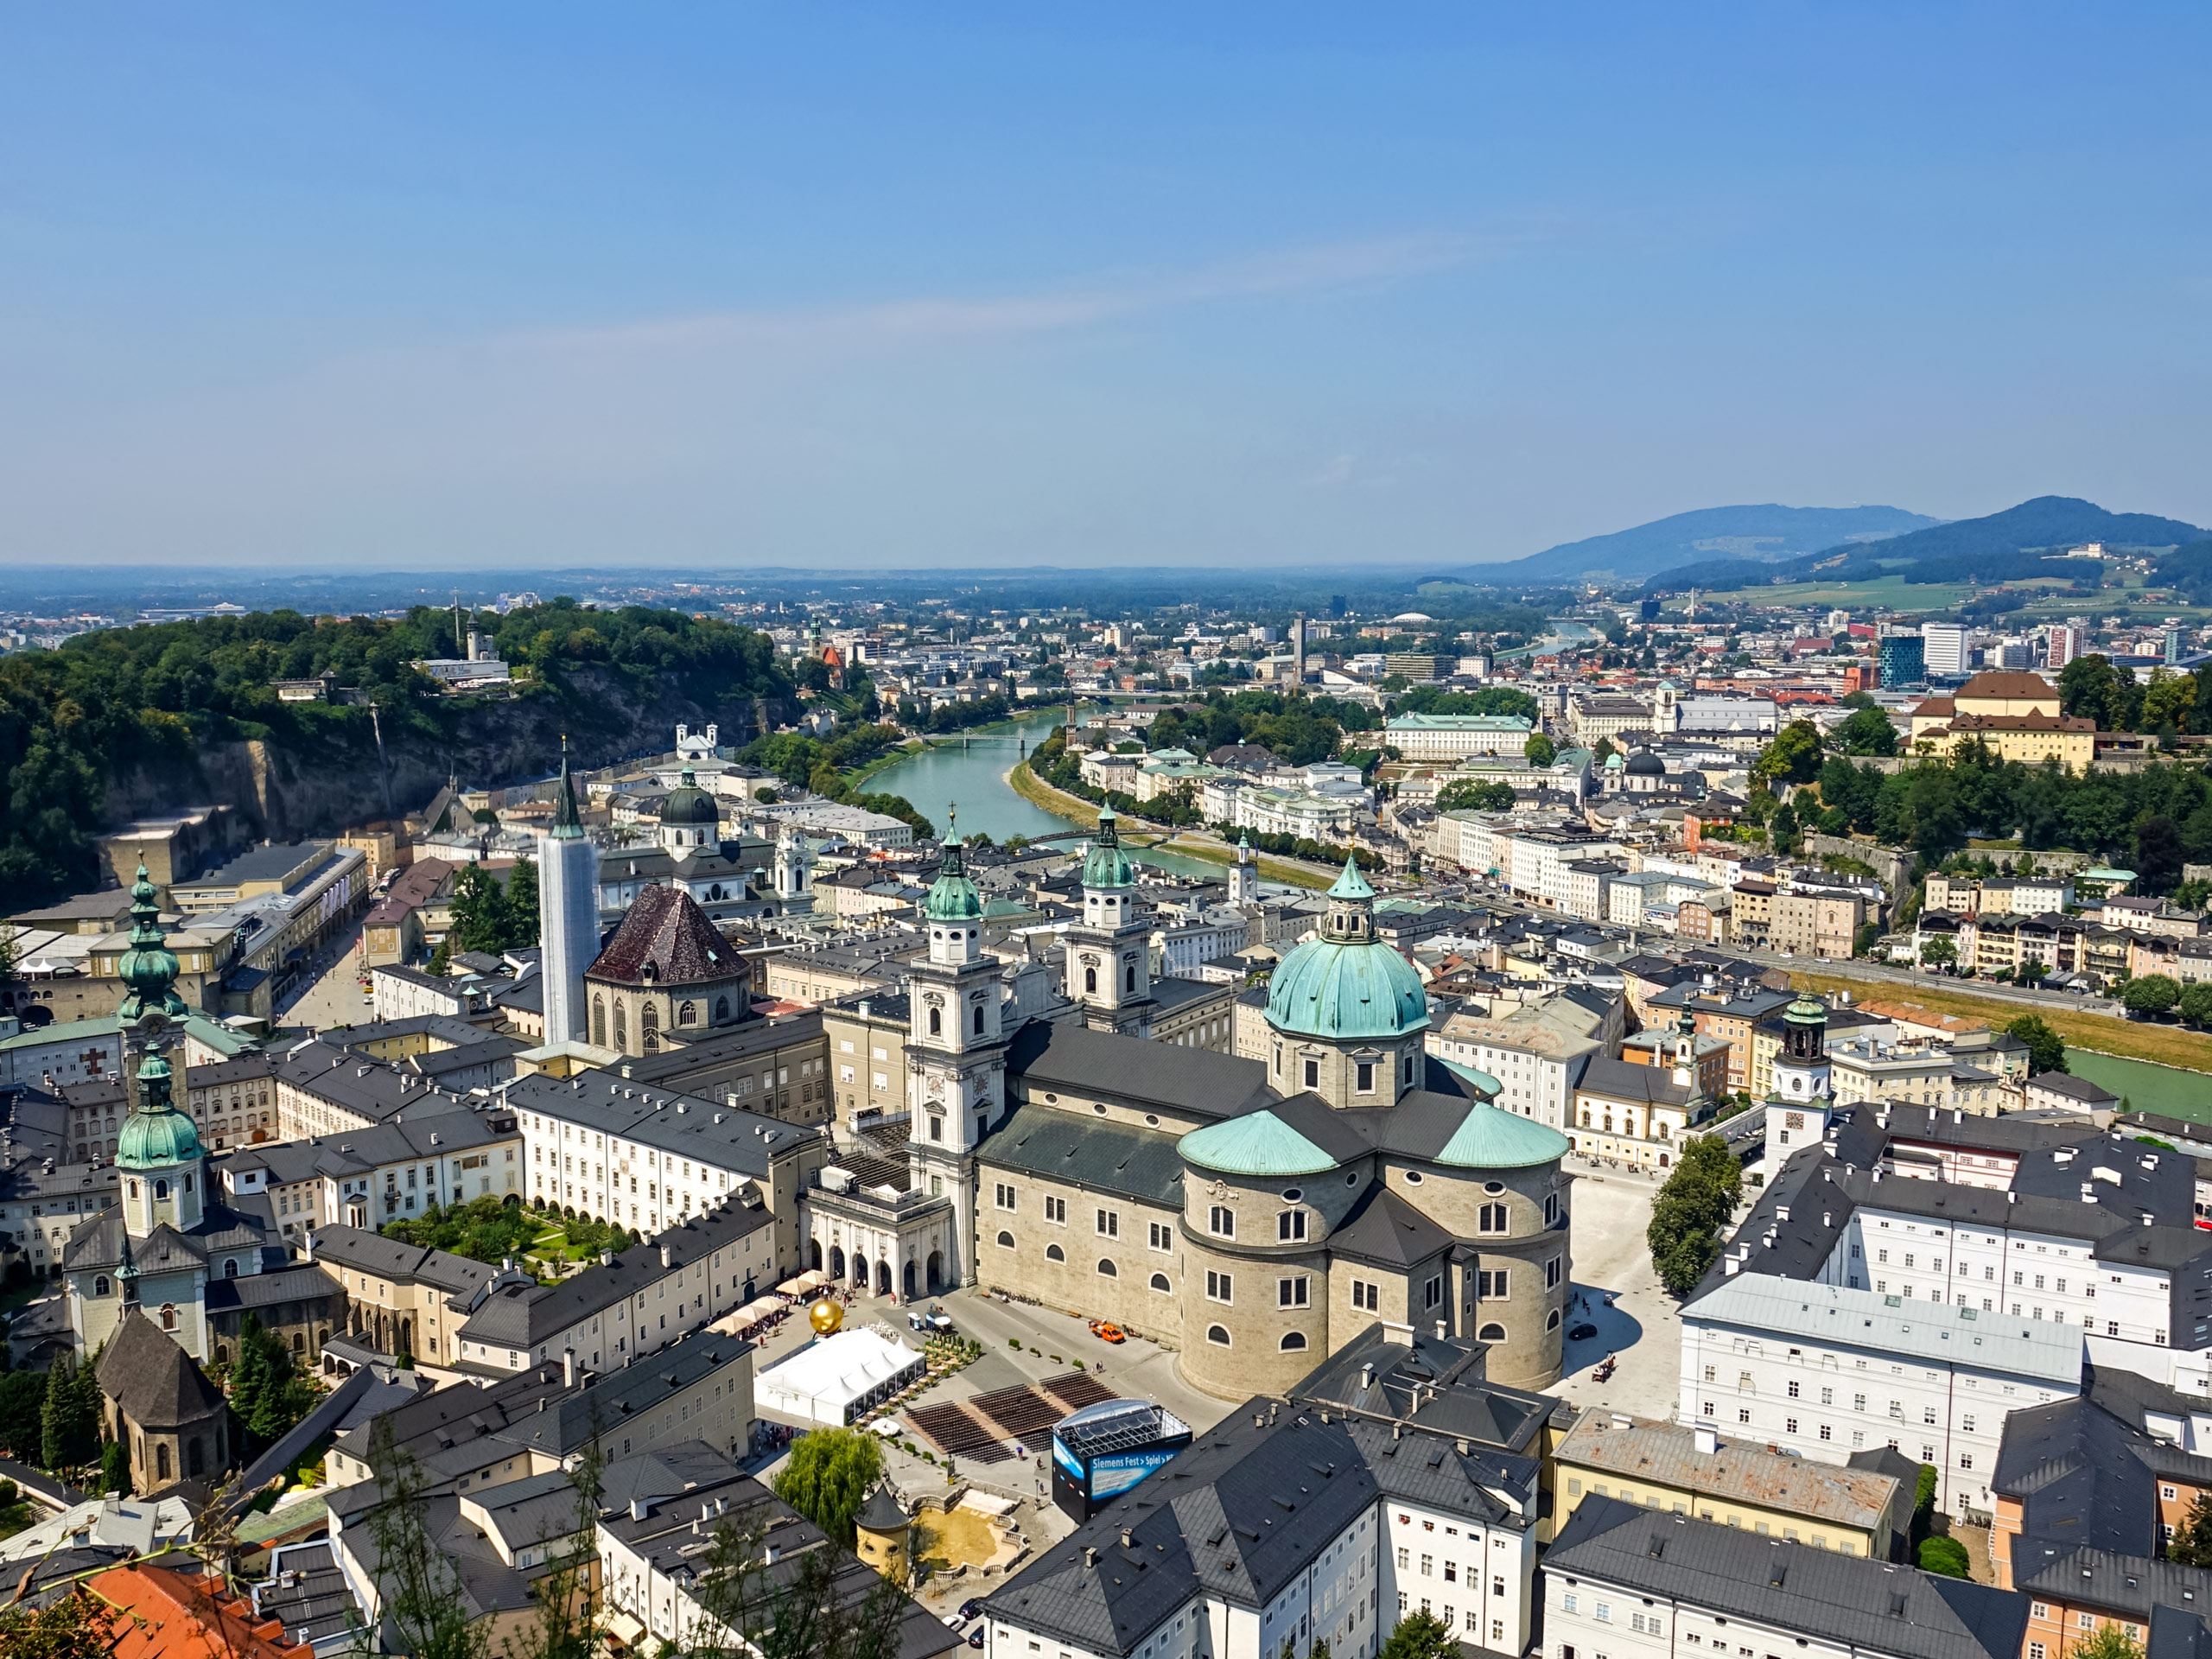 Salzach River salzburg city skyline biking Alps